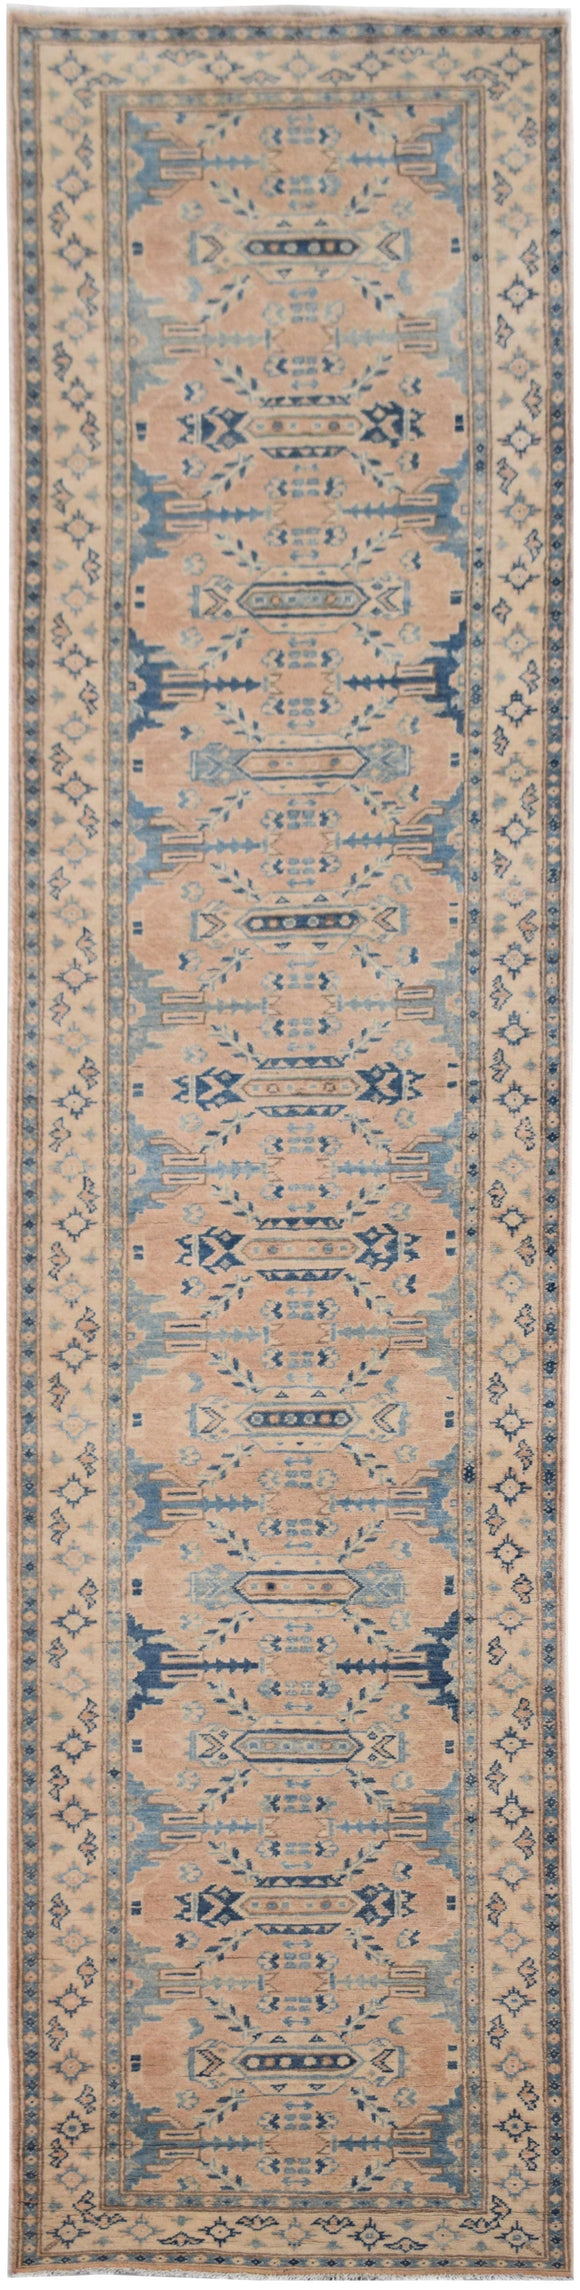 Handmade Sultan Collection Hallway Runner | 386 x 79 cm